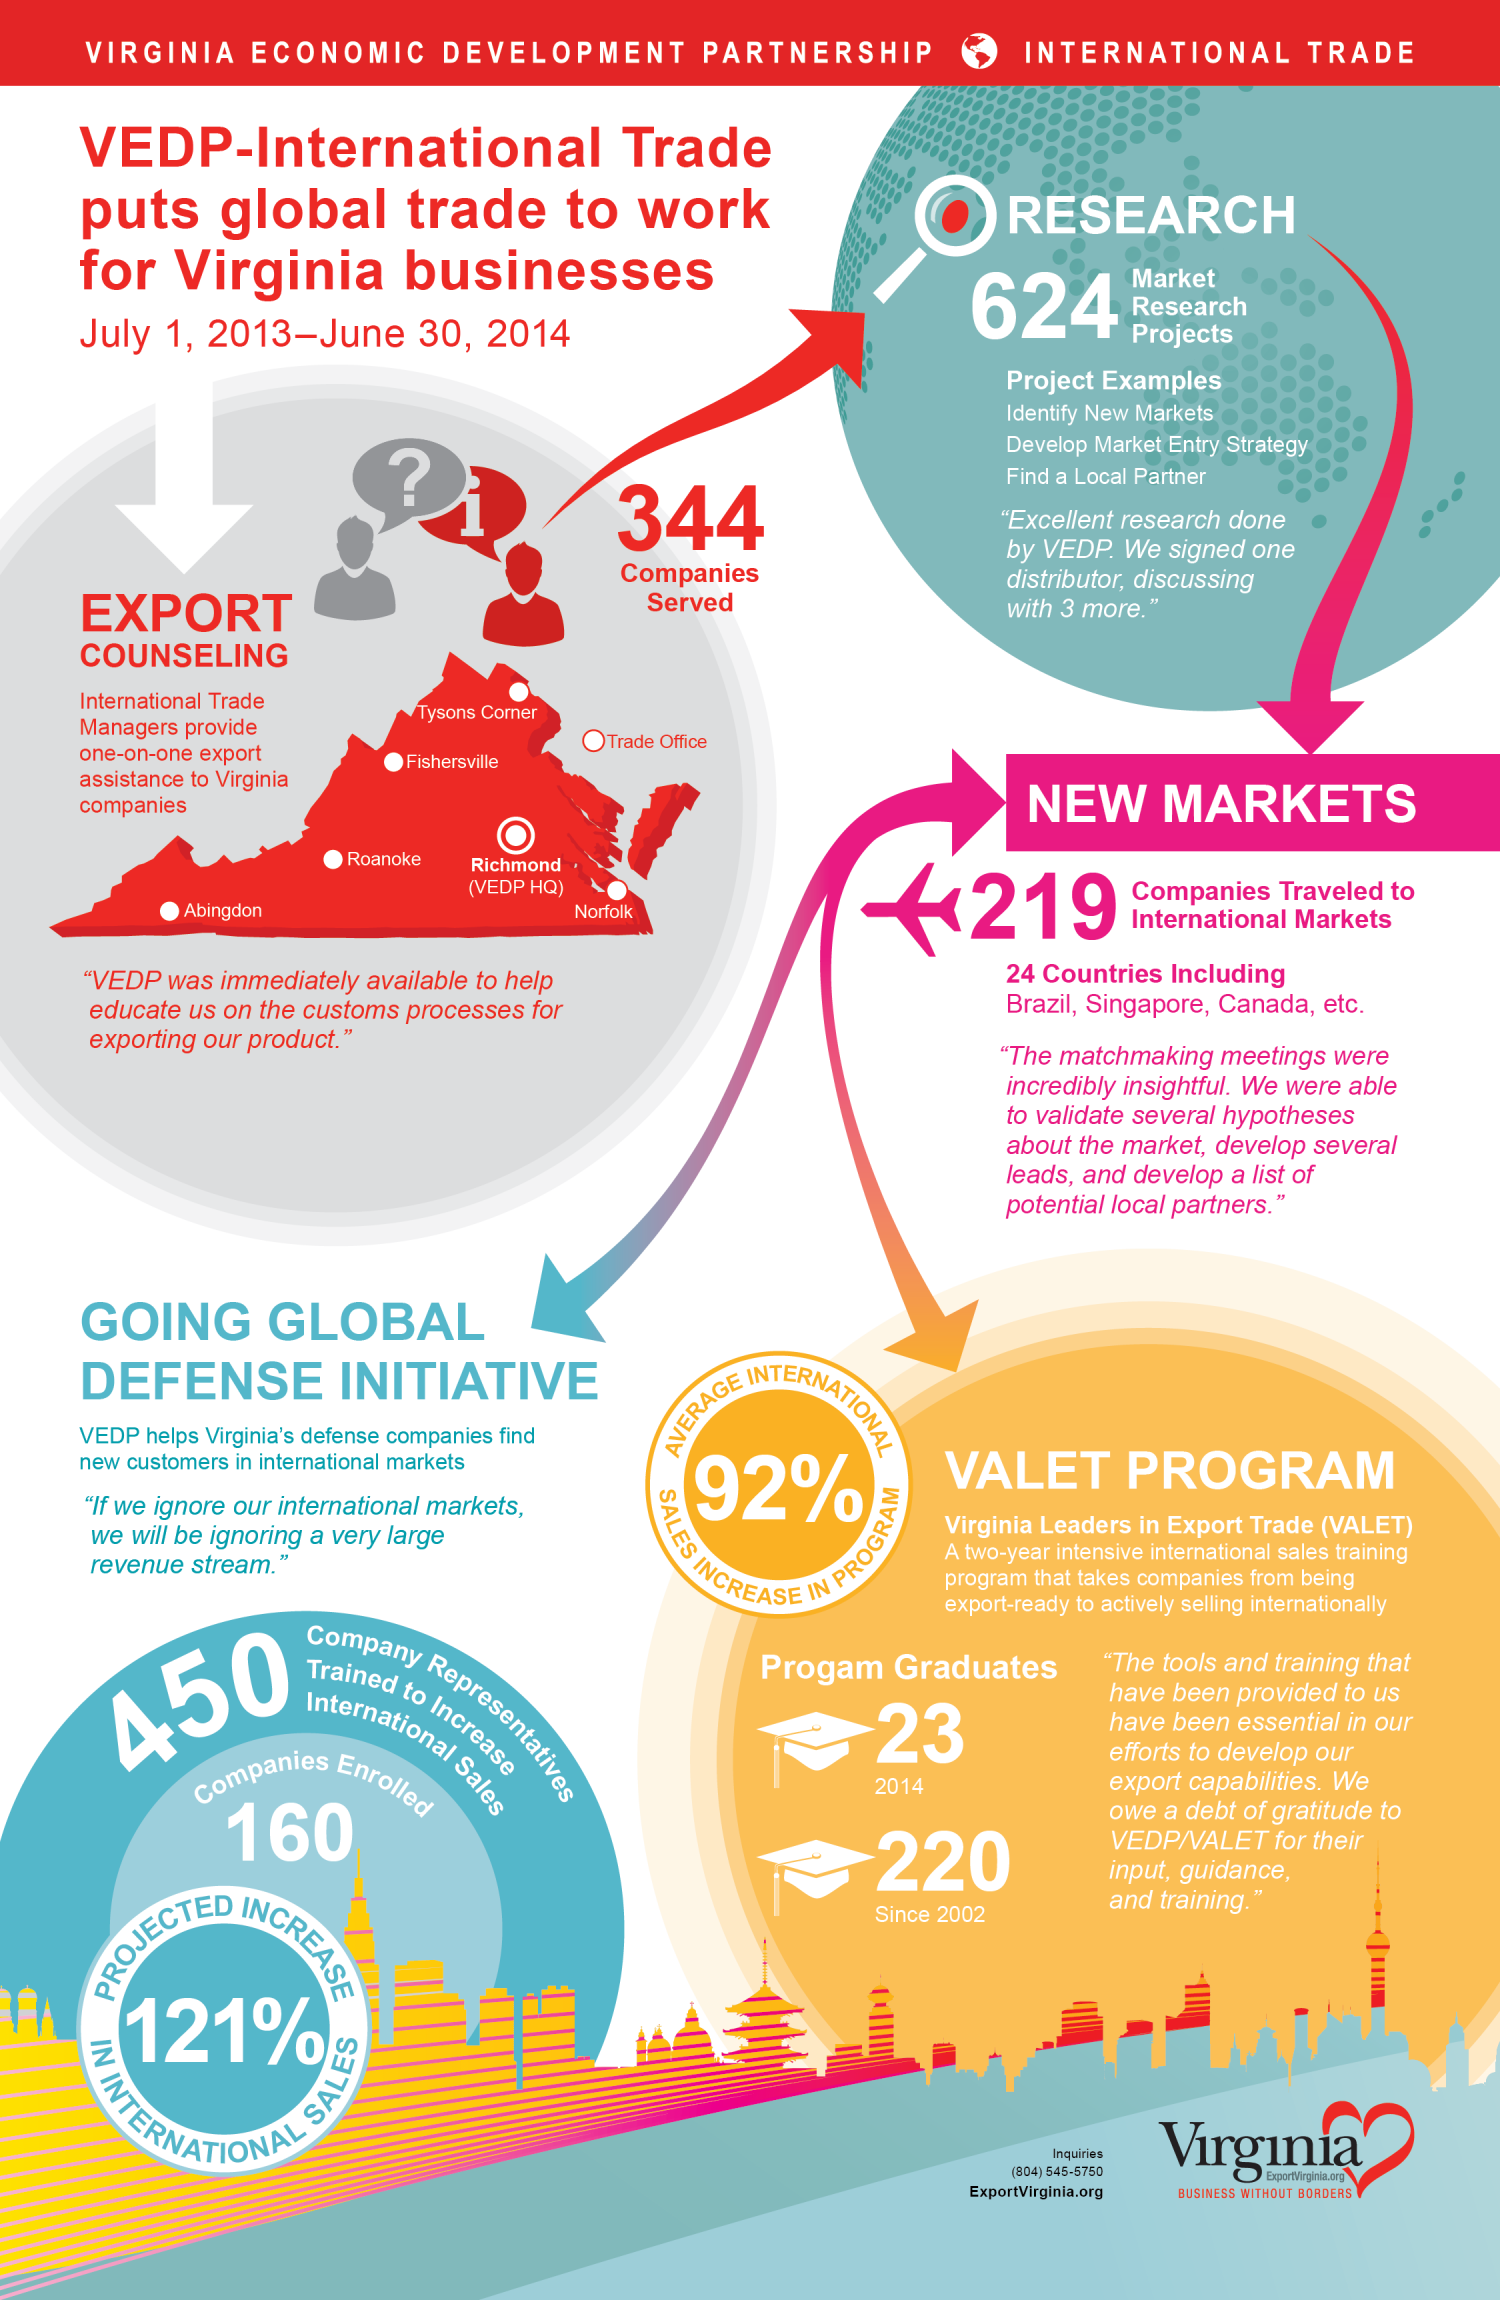 VEDP 2014 Fiscal Year Summary Infographic